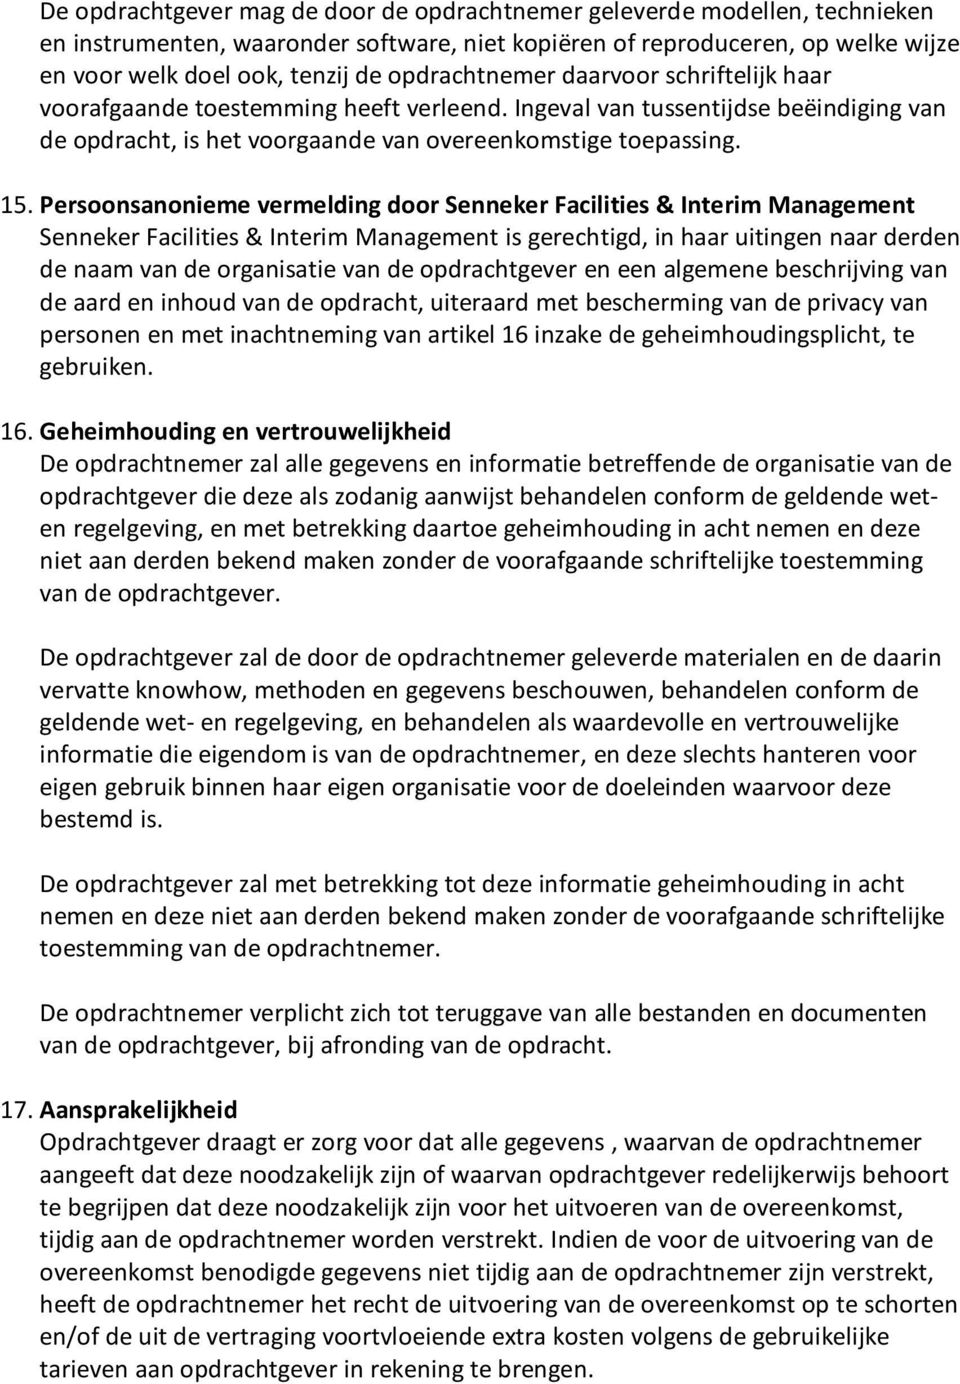 Persoonsanonieme vermelding door Senneker Facilities & Interim Management Senneker Facilities & Interim Management is gerechtigd, in haar uitingen naar derden de naam van de organisatie van de